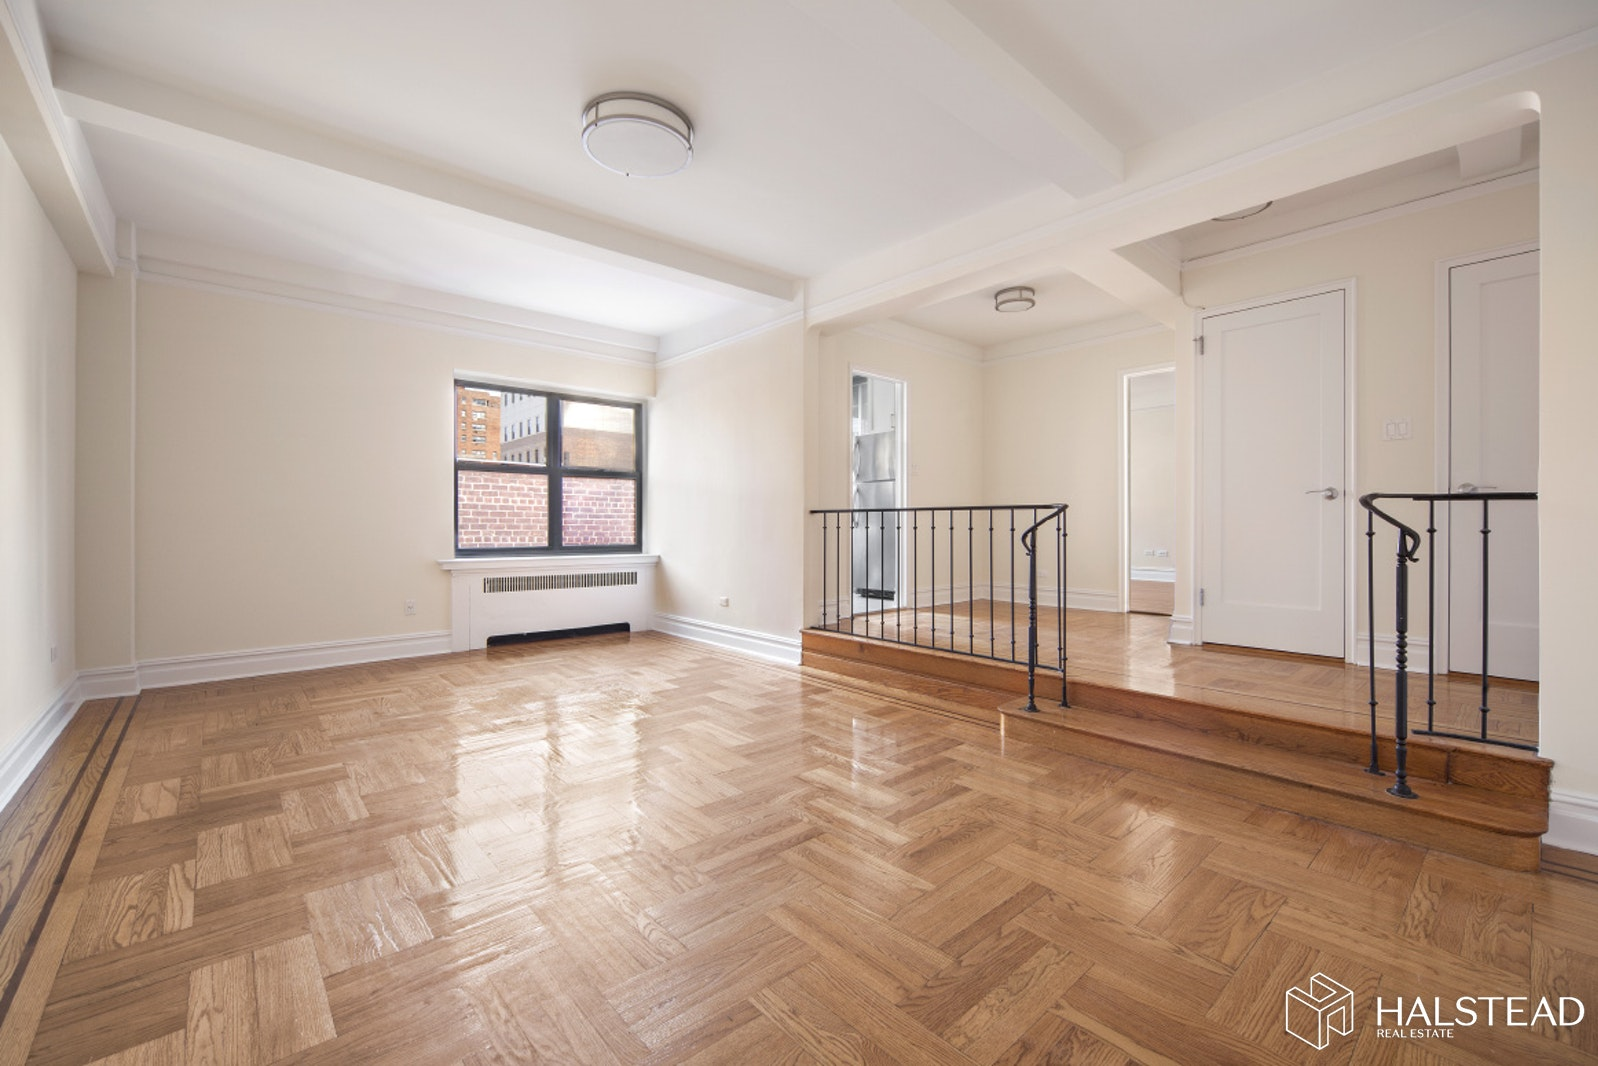 231 East 76th Street 6k, Upper East Side, NYC, 10021, Price Not Disclosed, Rented Property, Halstead Real Estate, Photo 1